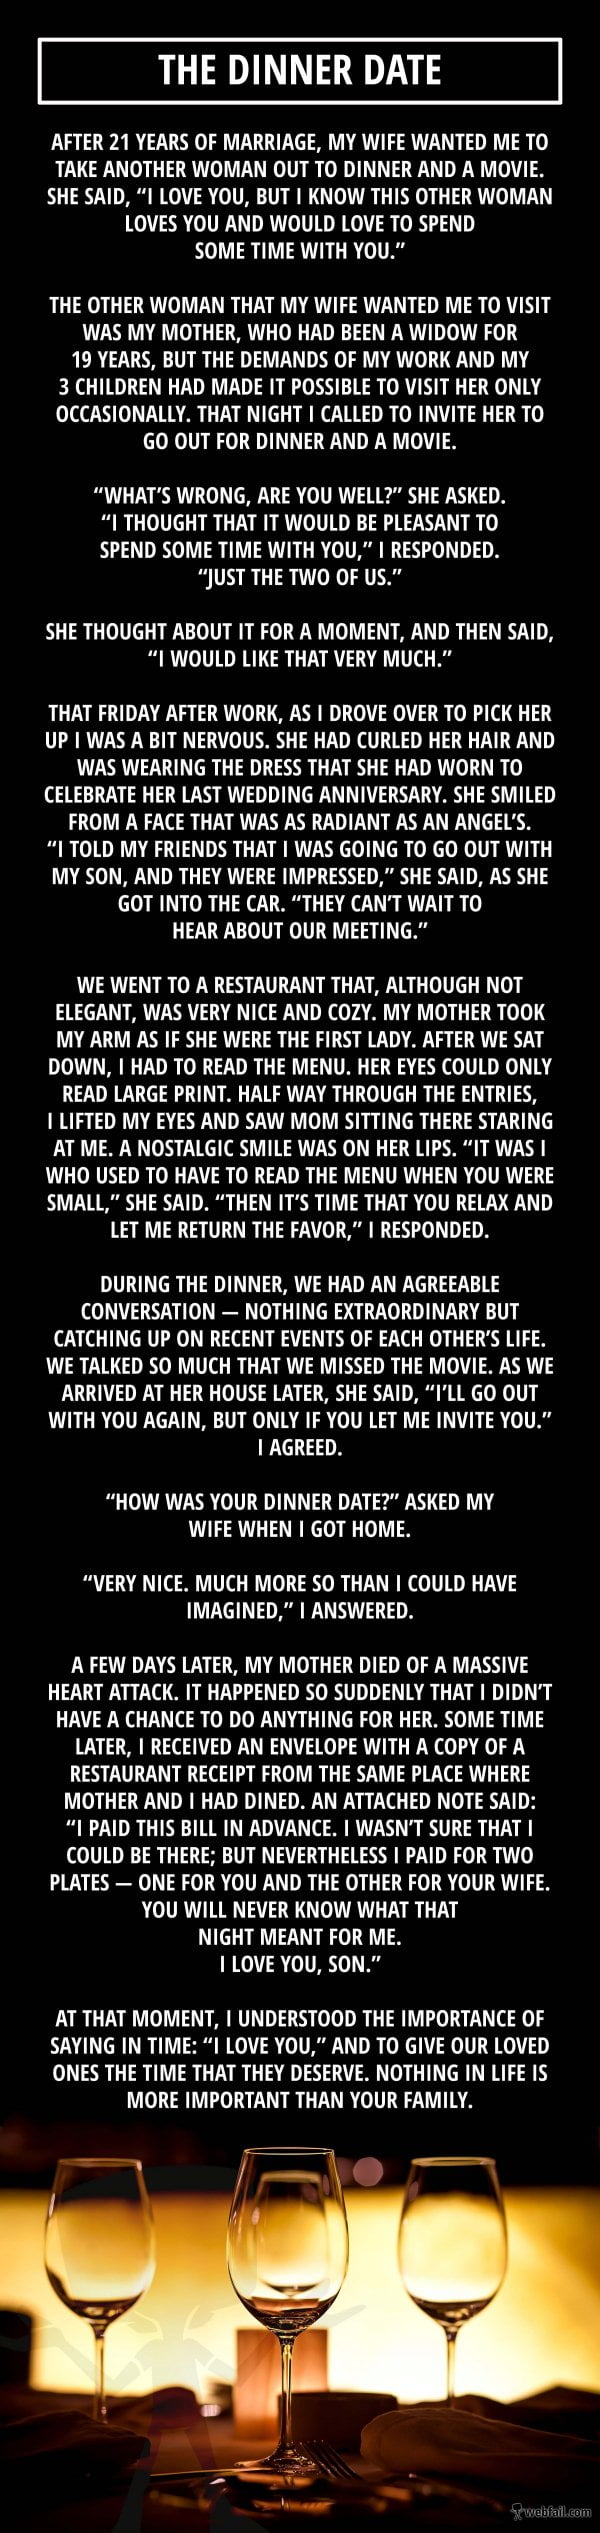 The Dinner Date via webfail.com